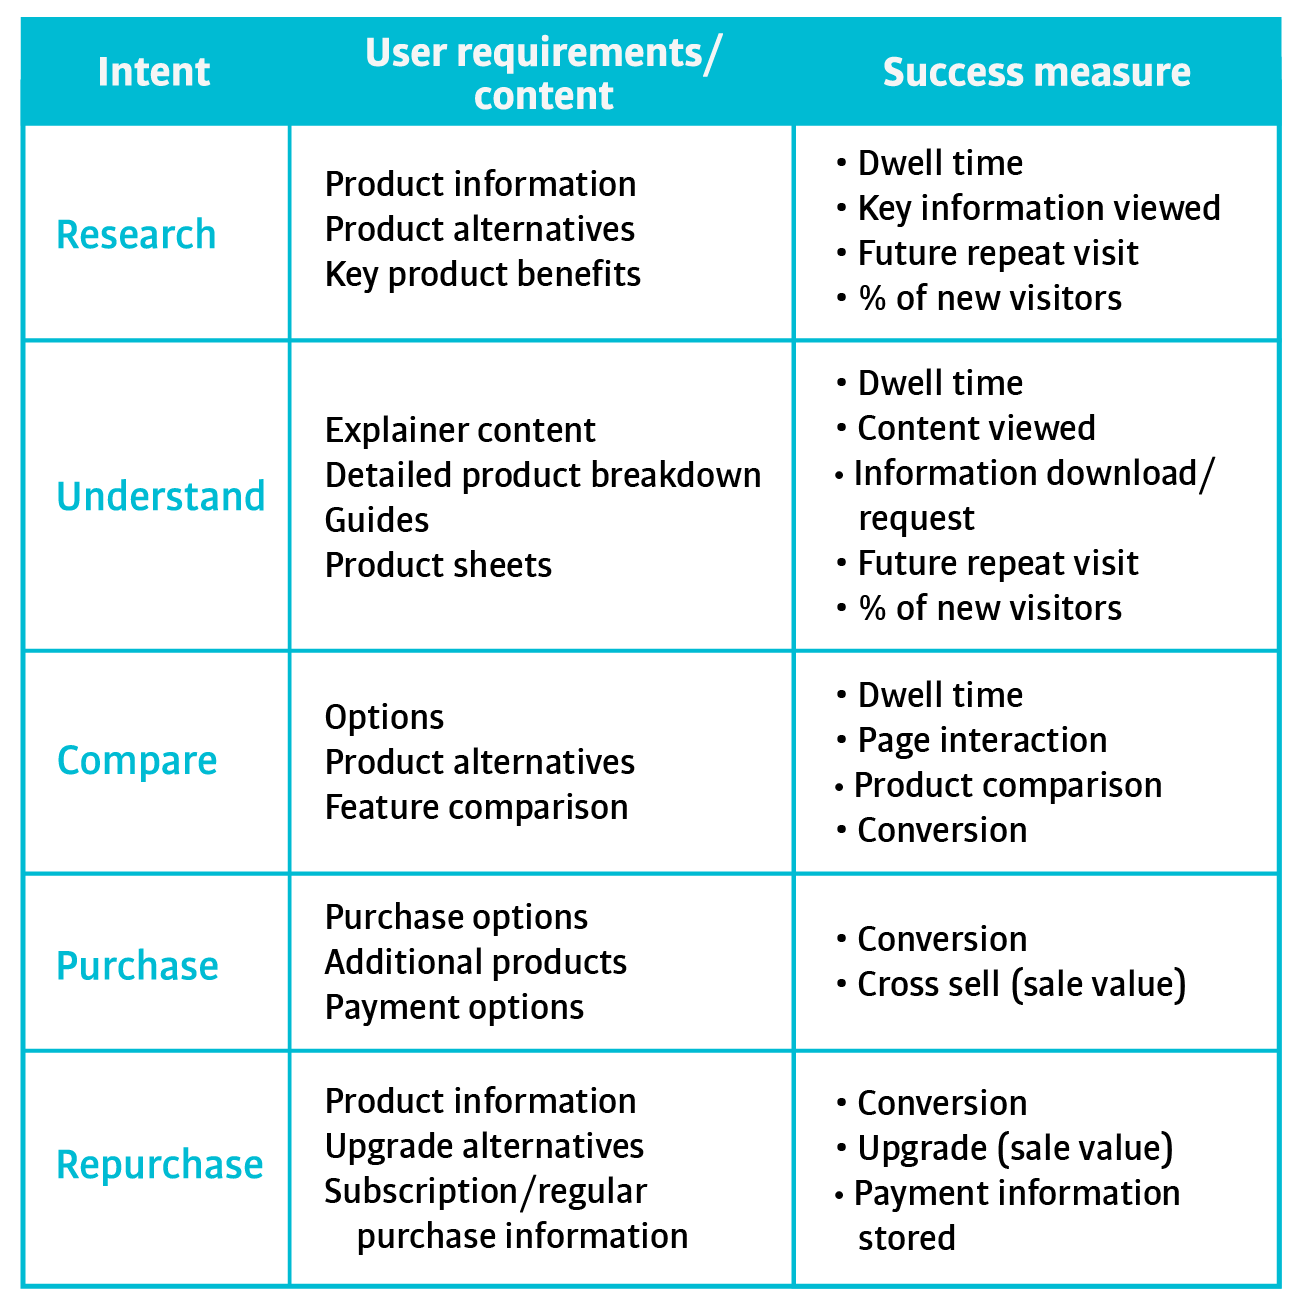 intent model for search